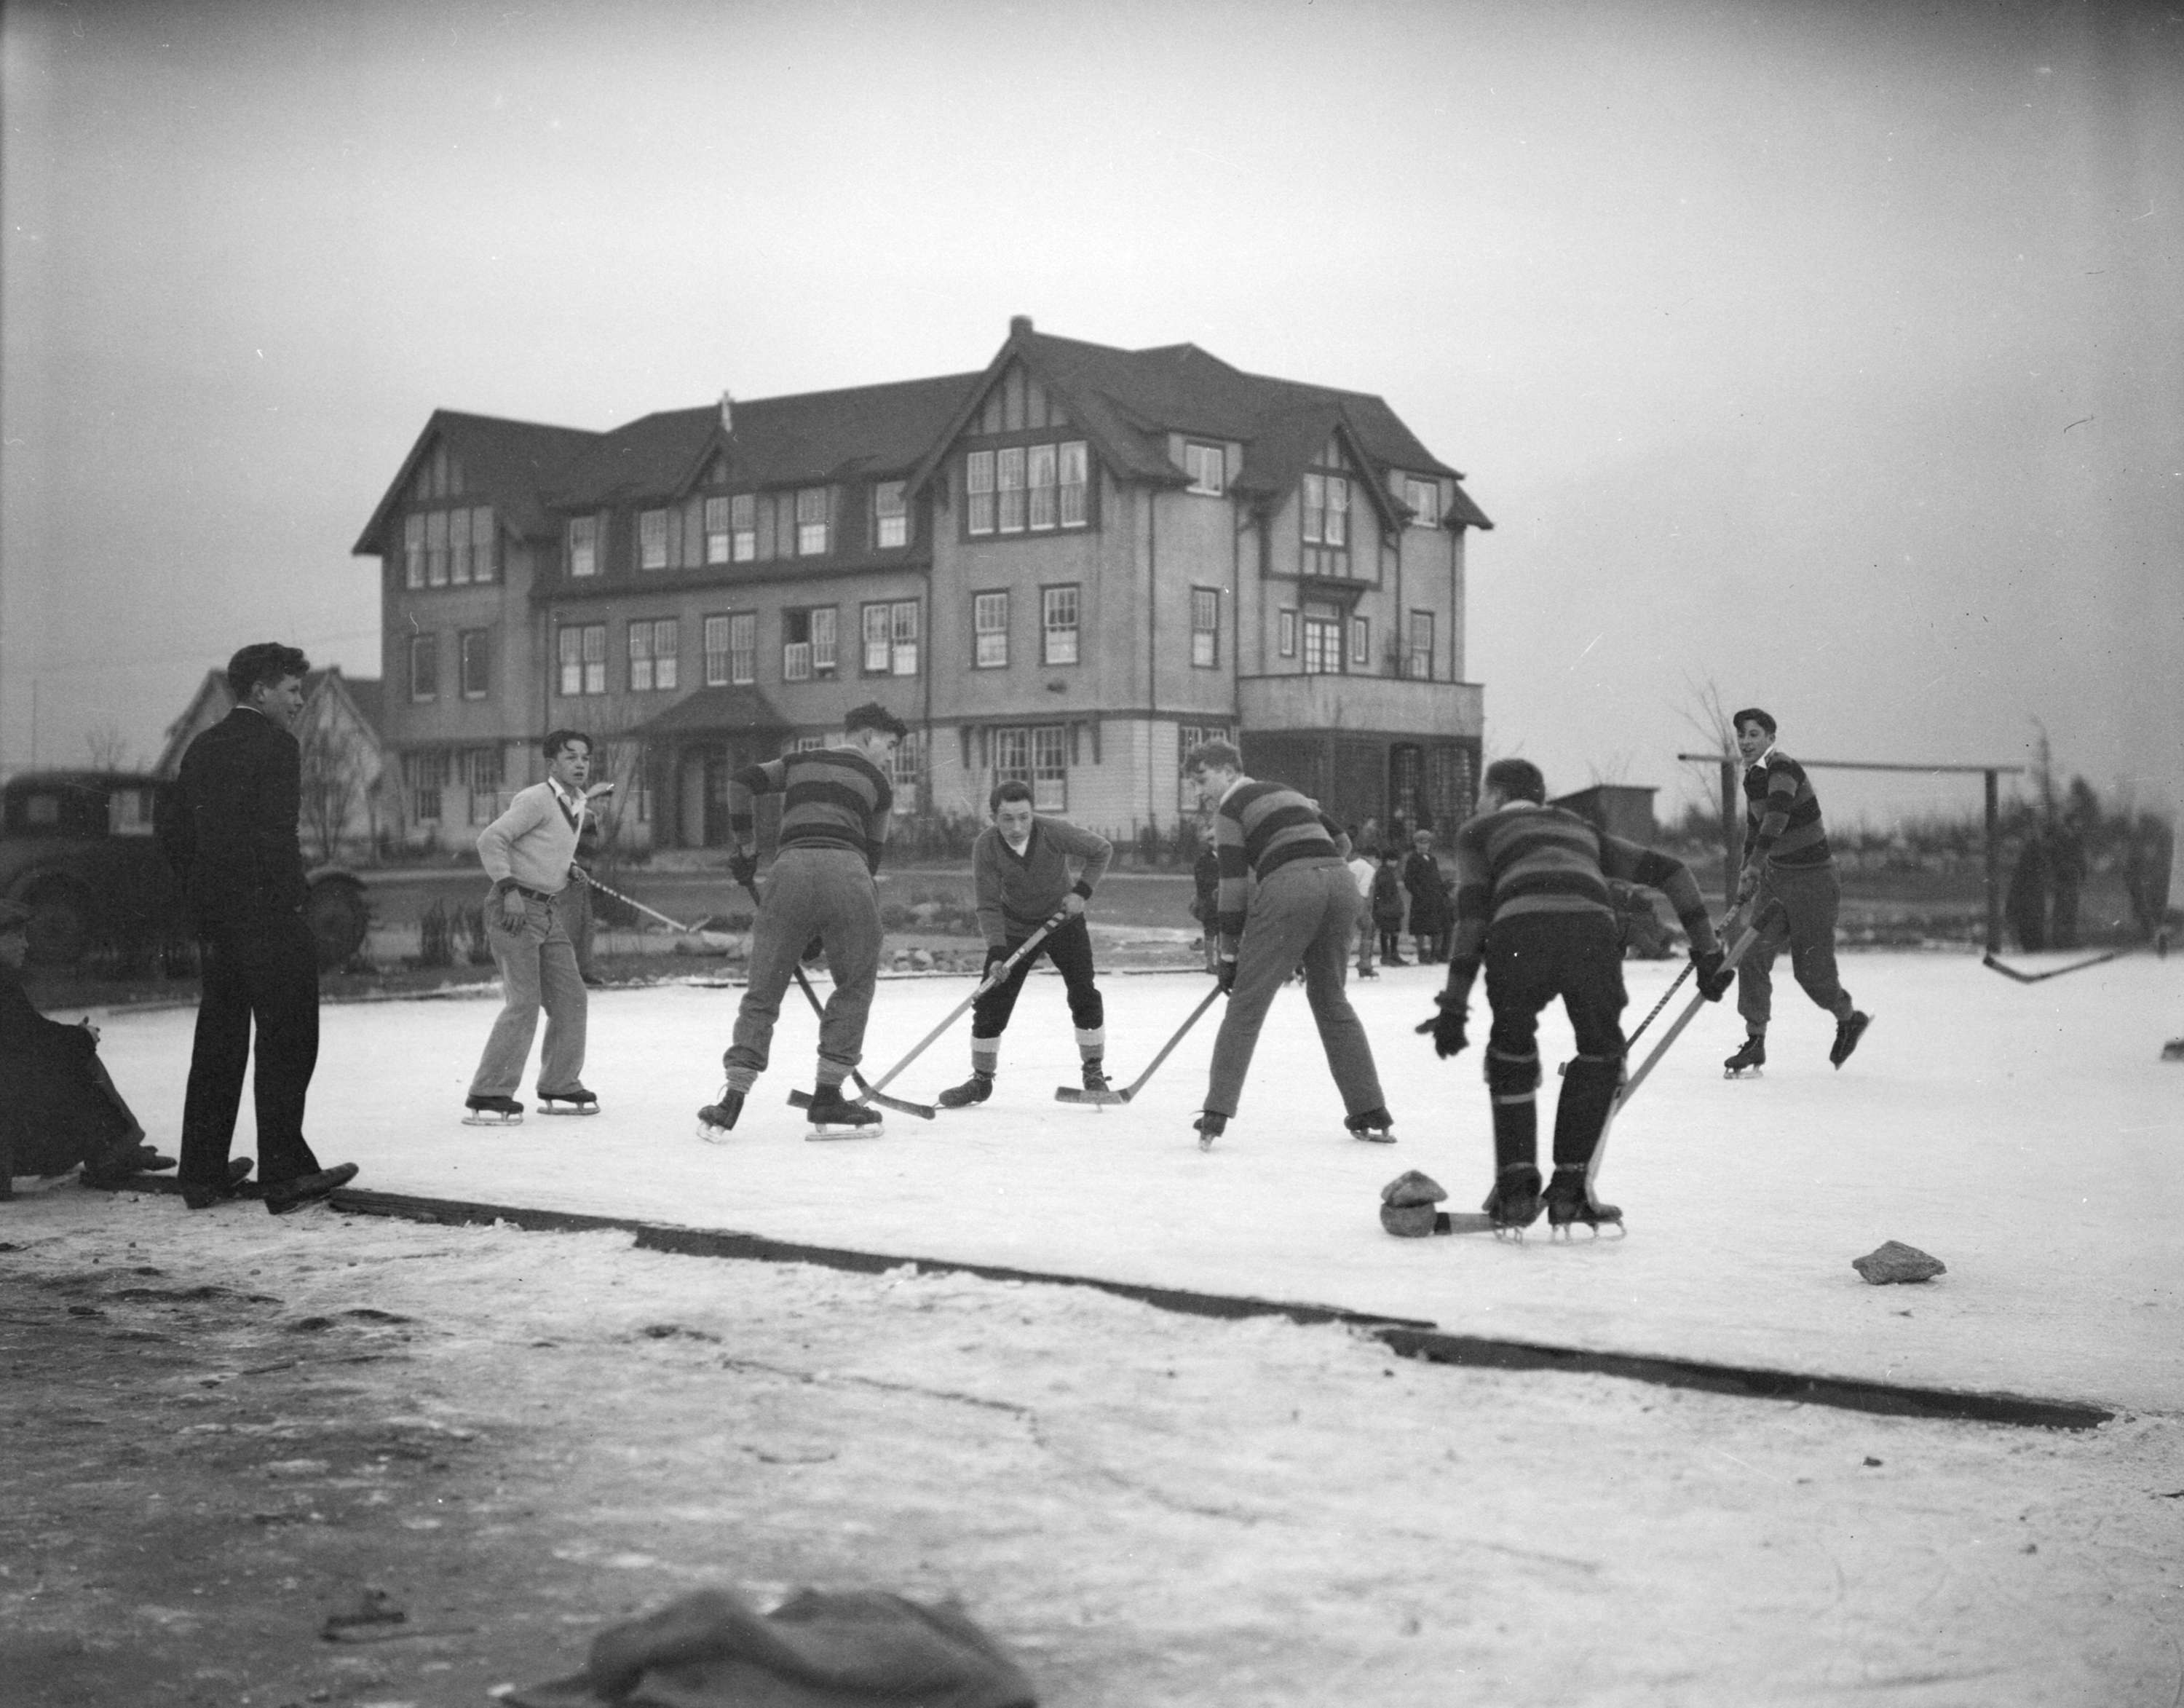 Vancouver College Game Of Shinny Ice Hockey Early